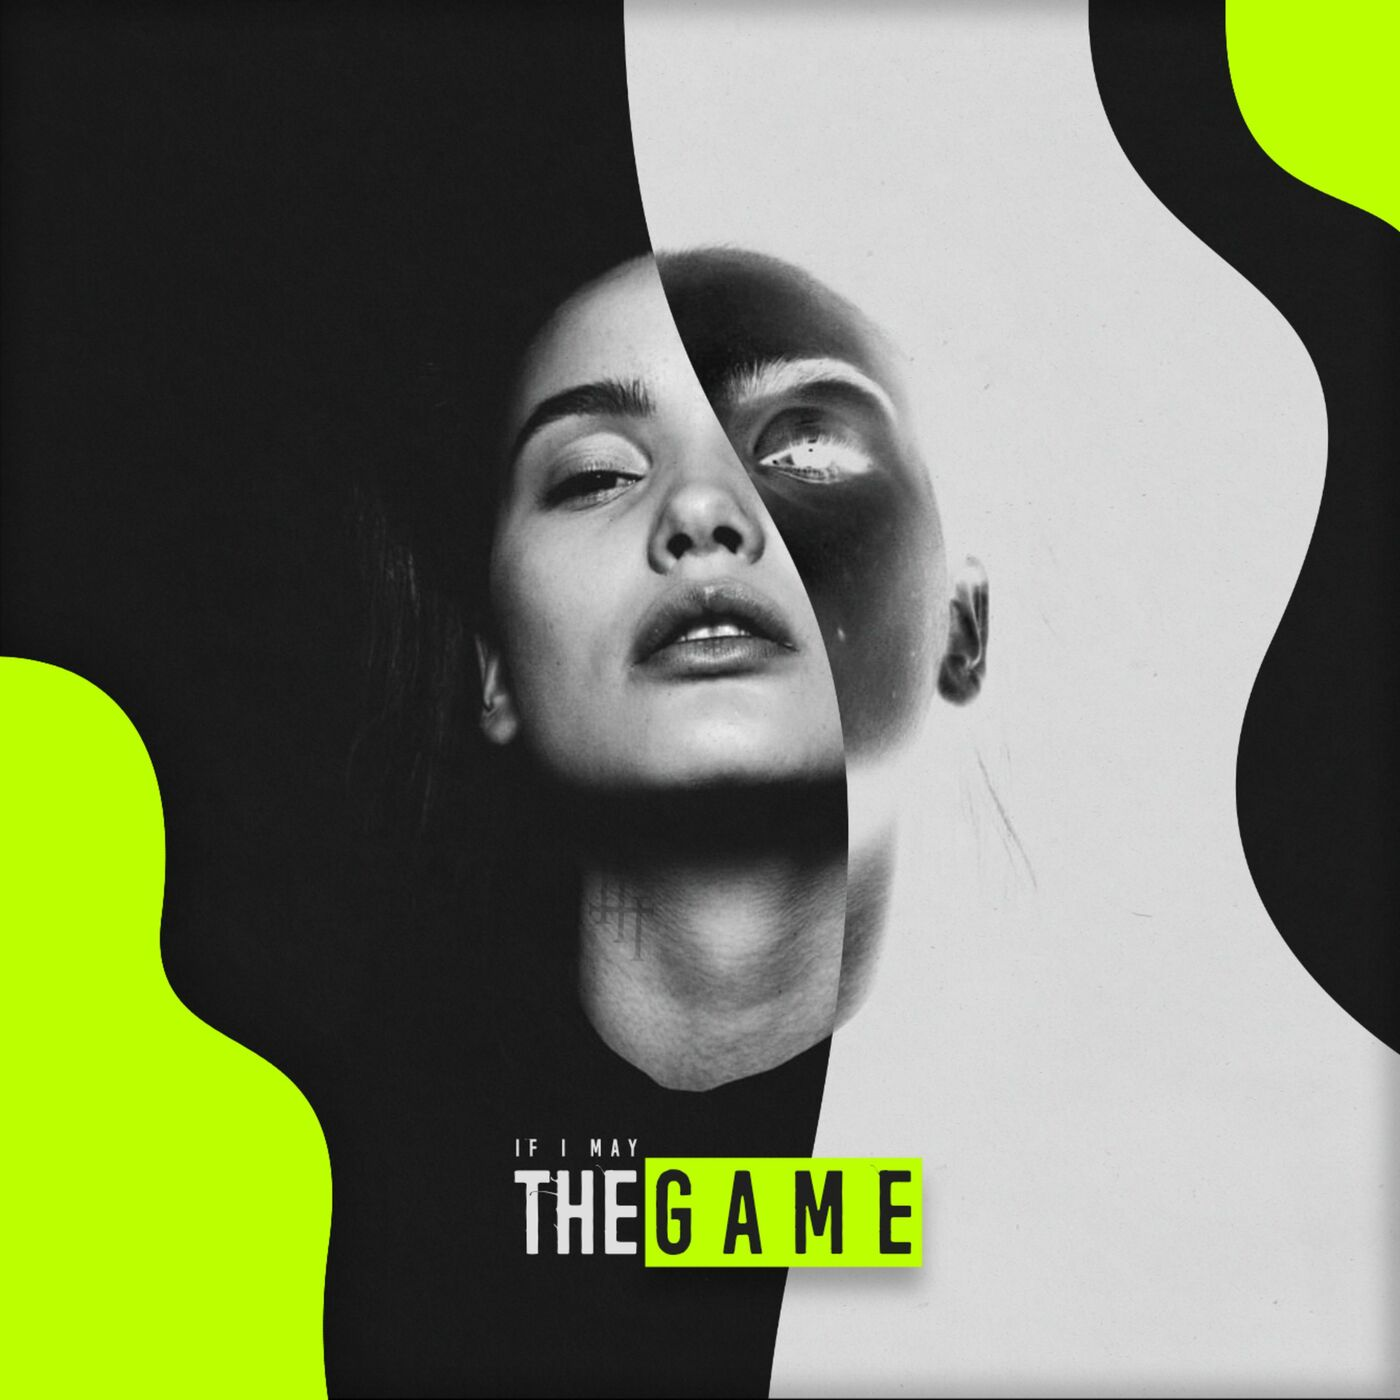 If I May - The Game [single] (2019)